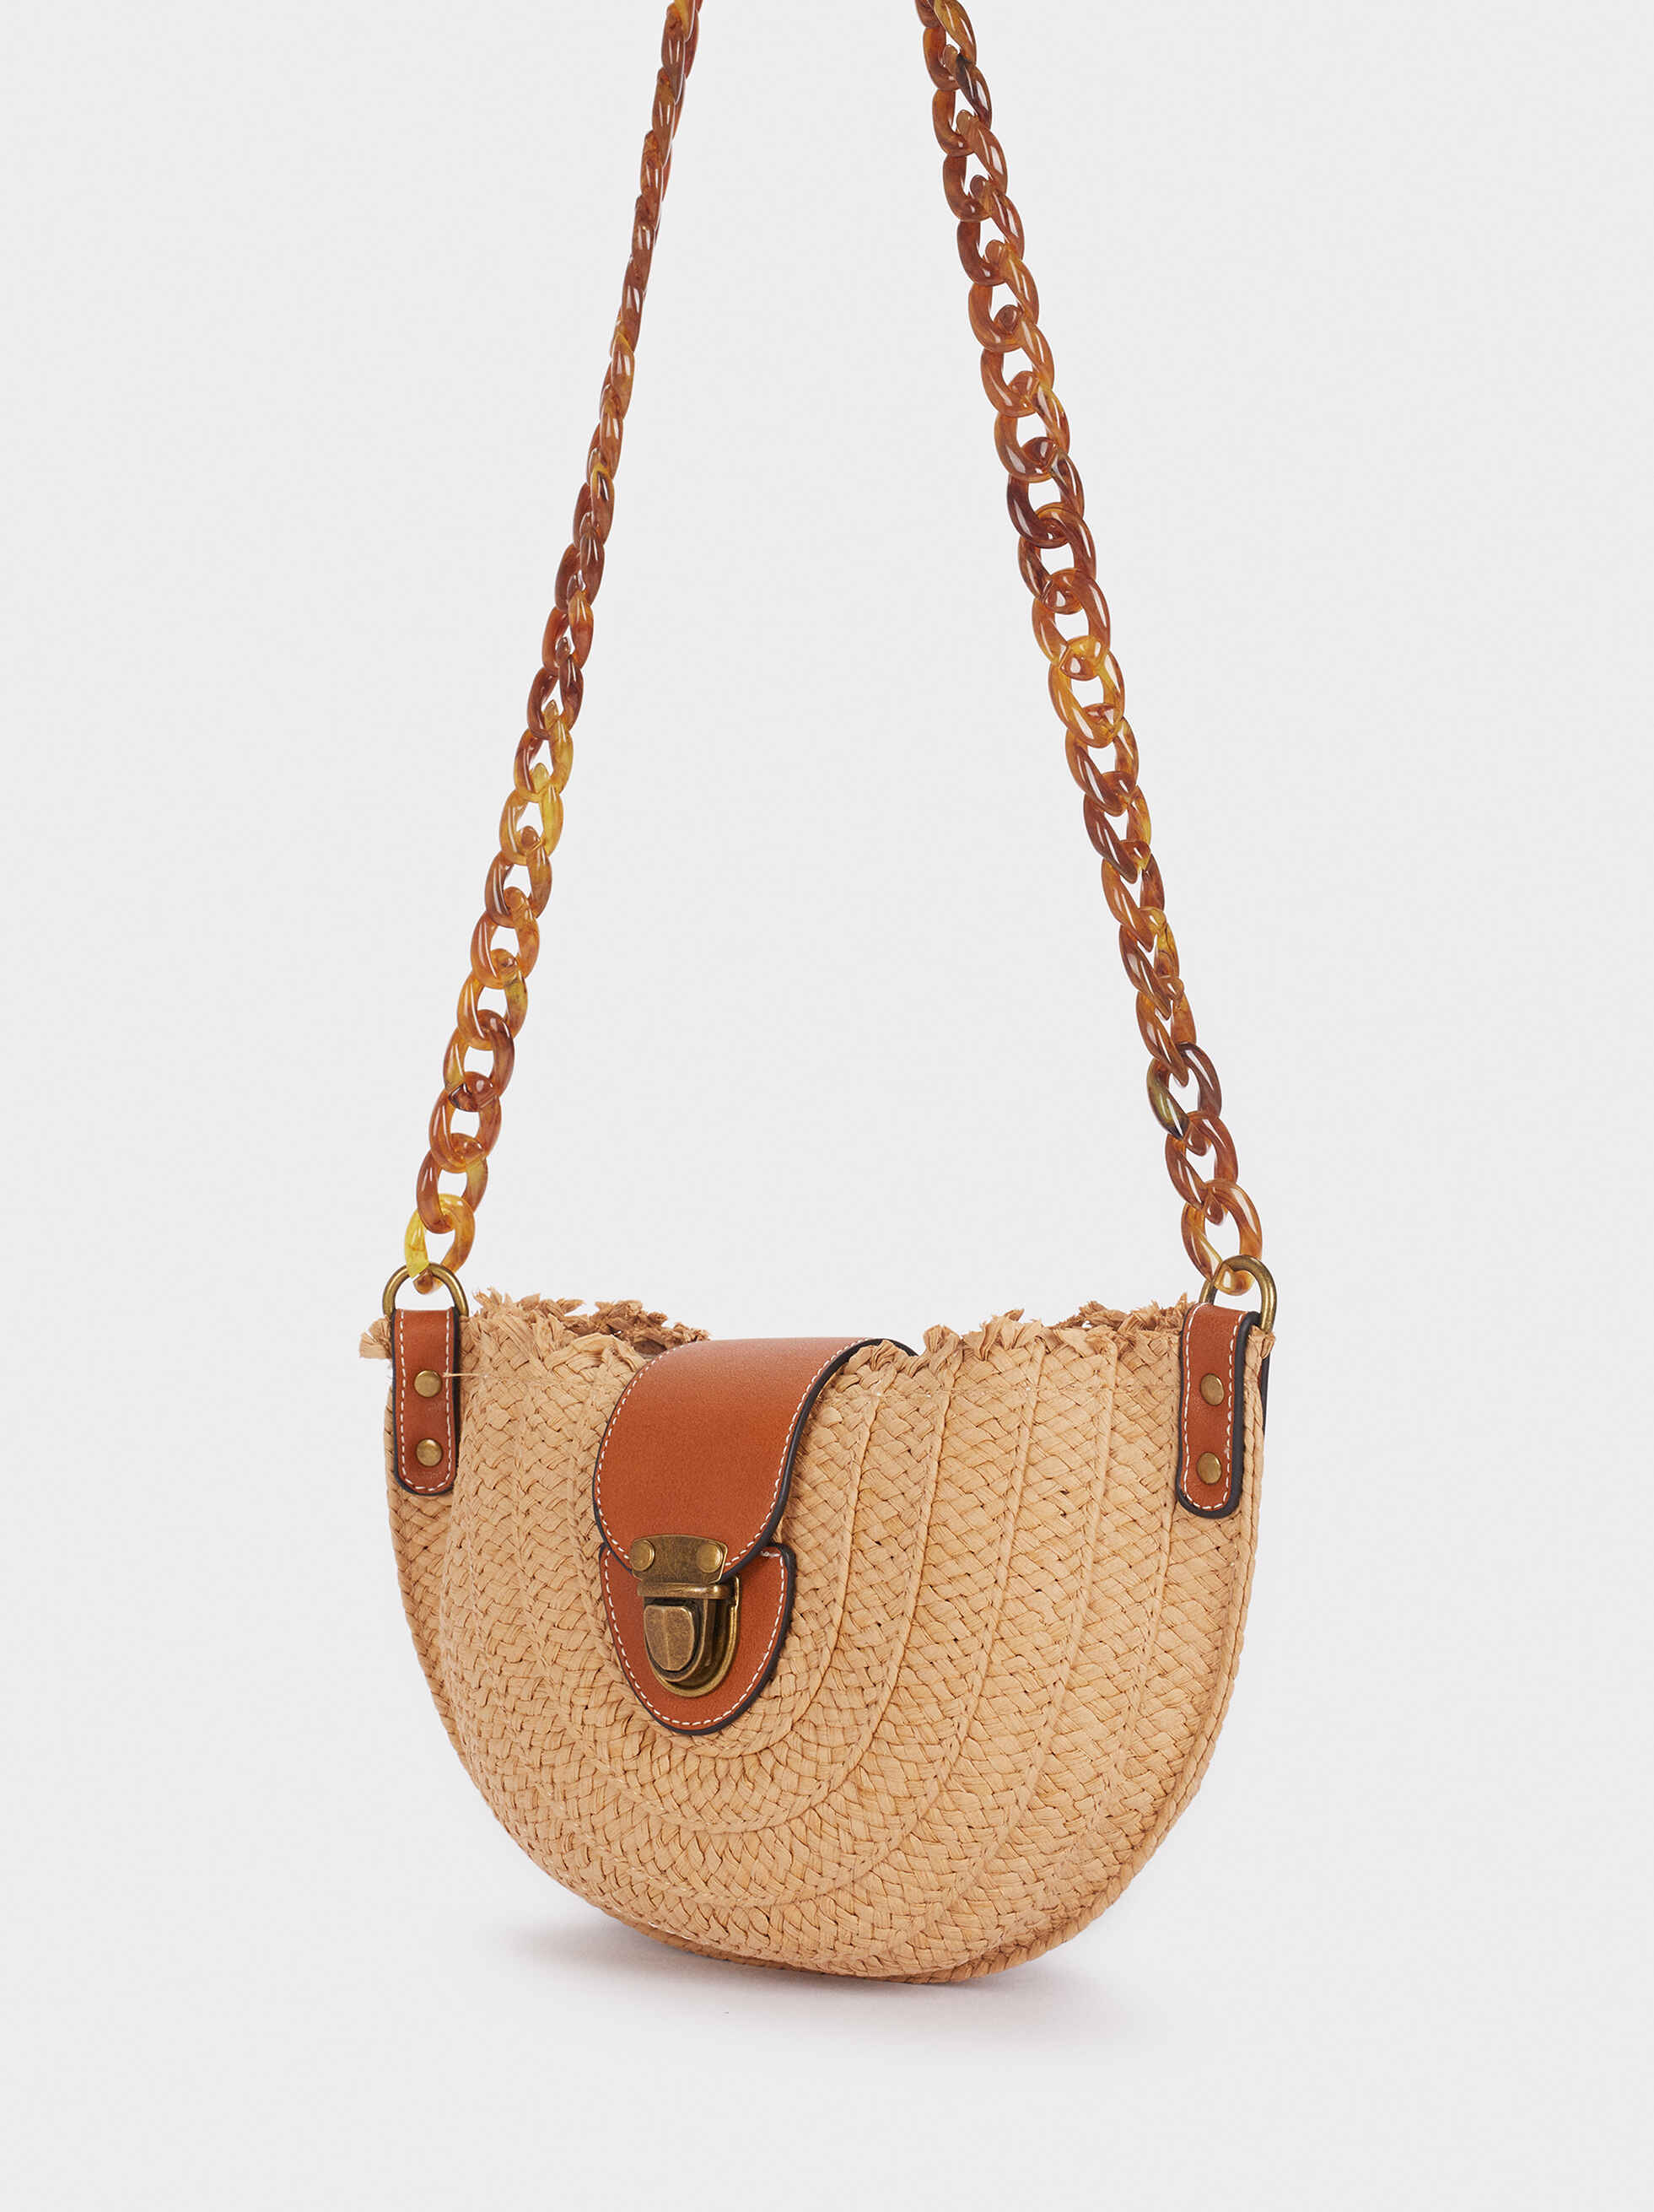 Raffia Shoulder Bag, Beige, hi-res